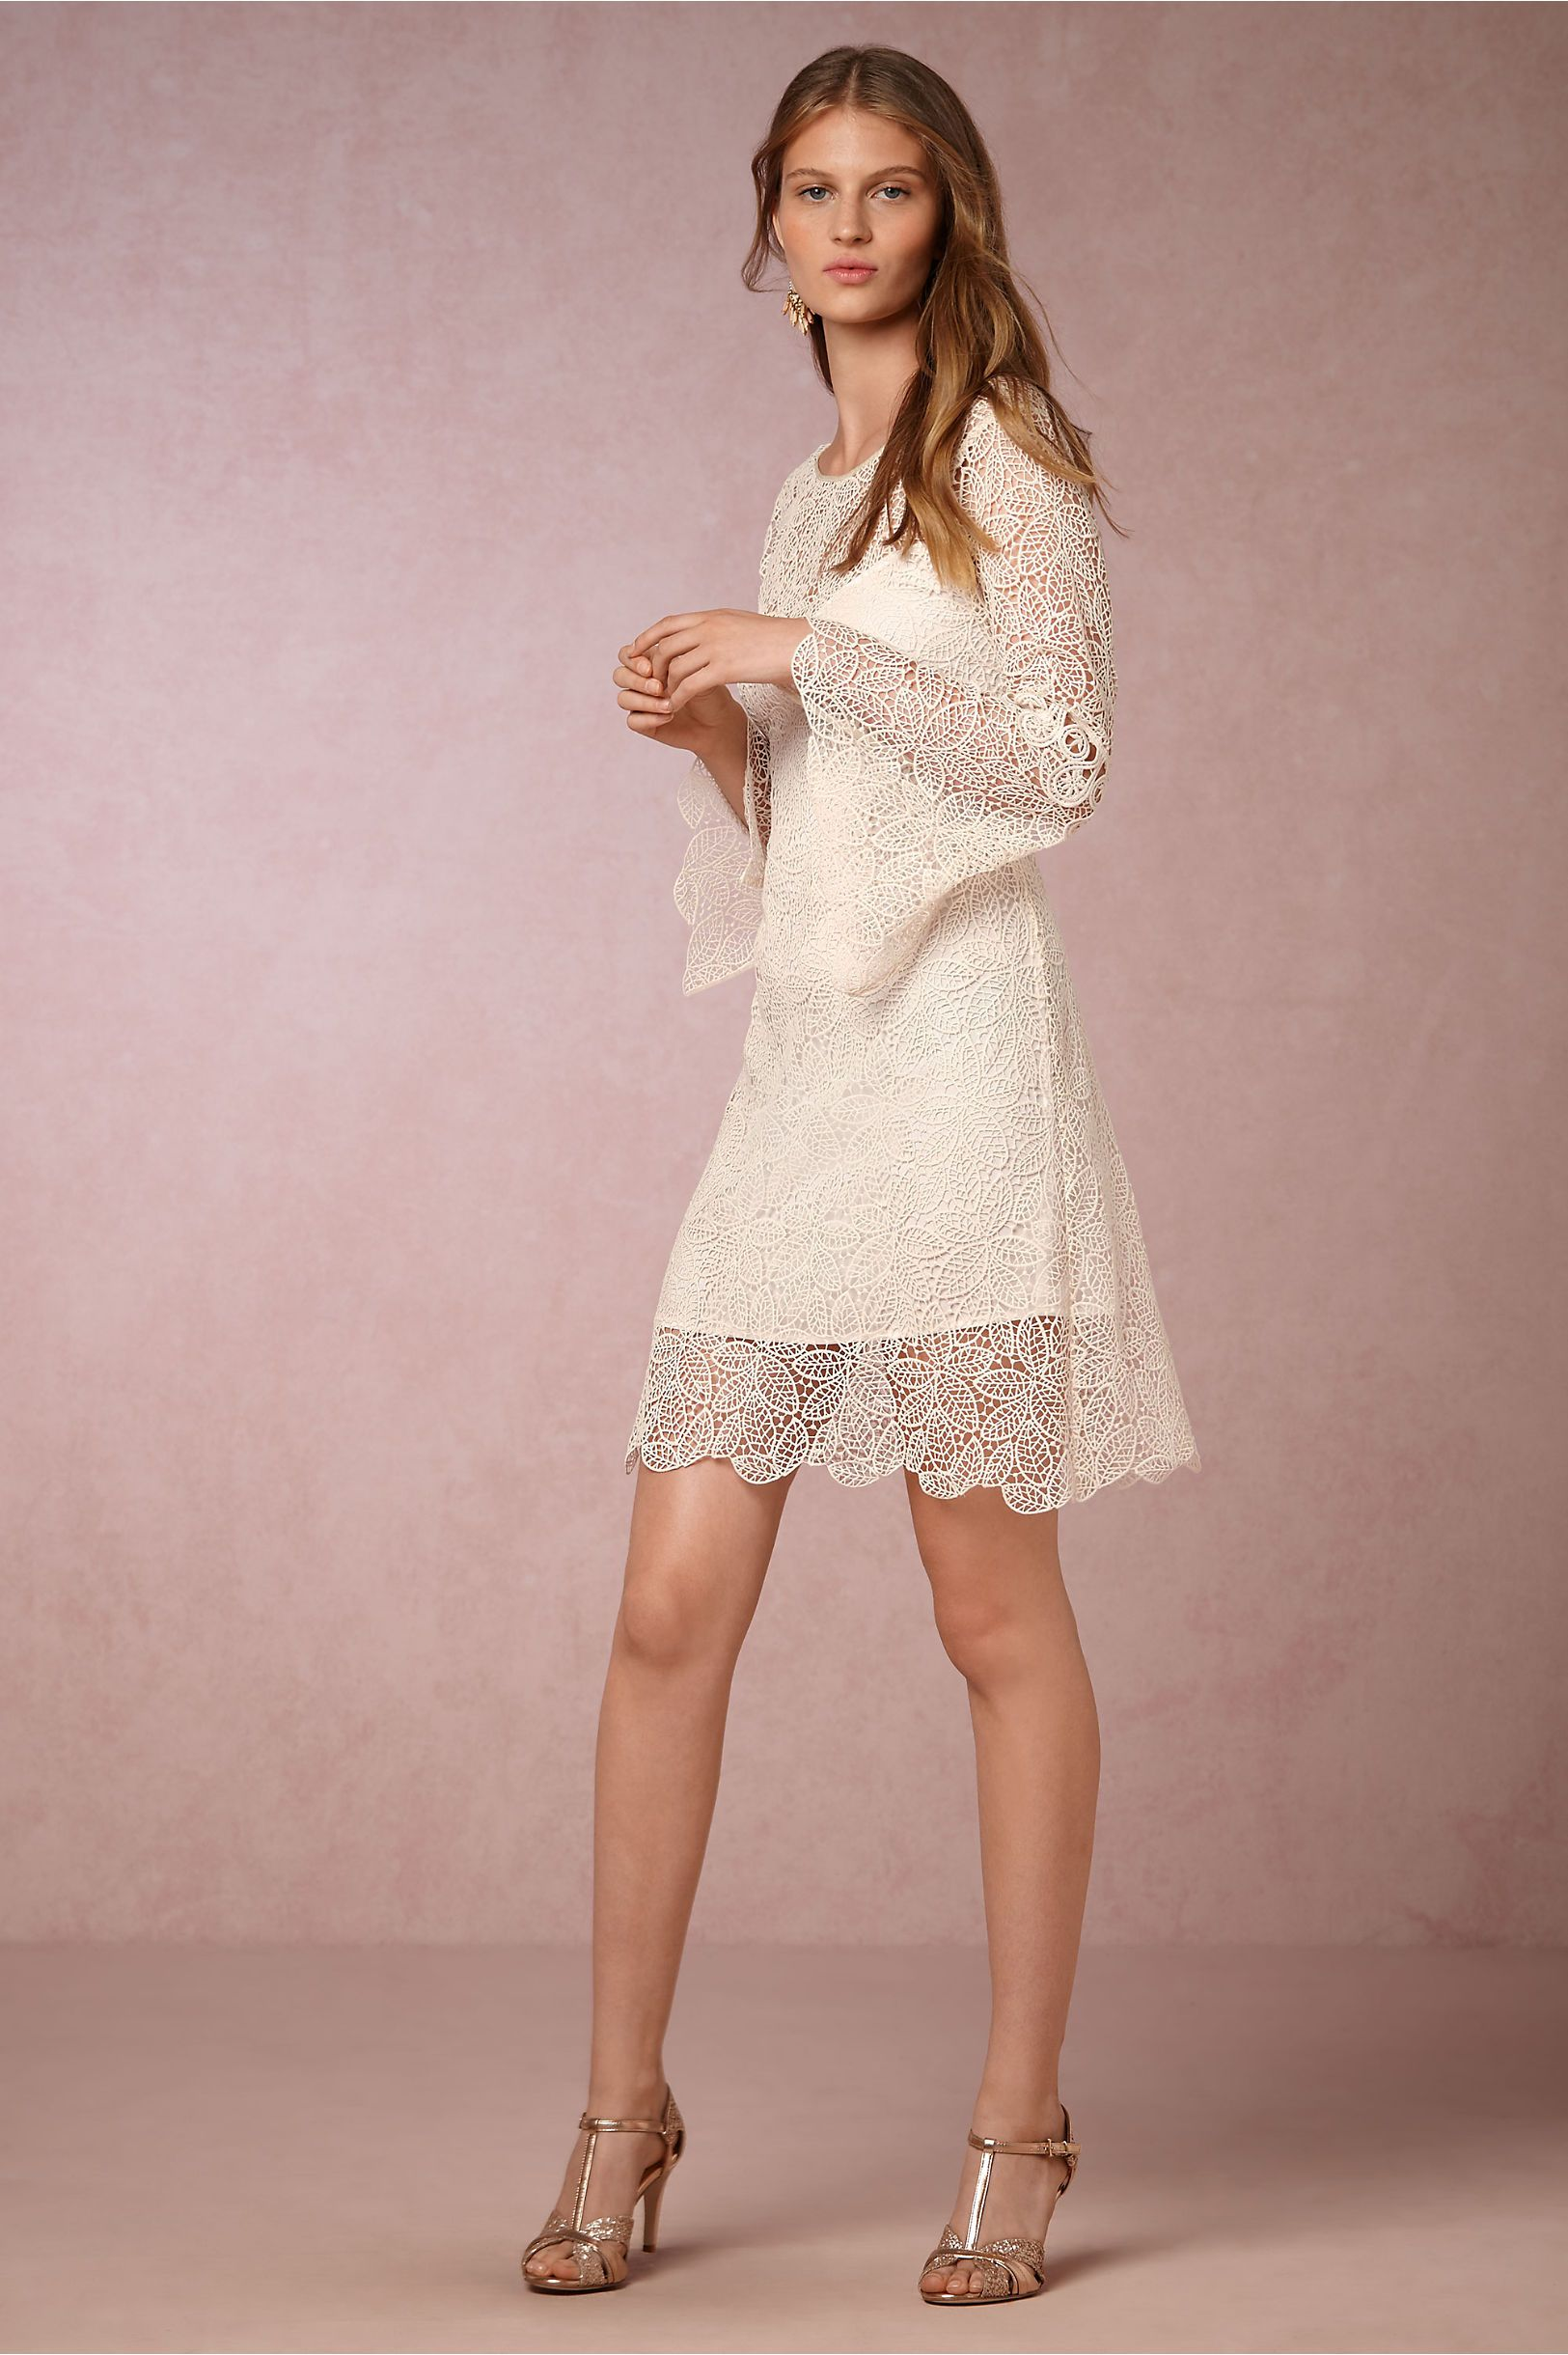 BHLDN Brynn Dress in Beach & Honeymoon Dresses & Separates | BHLDN ...